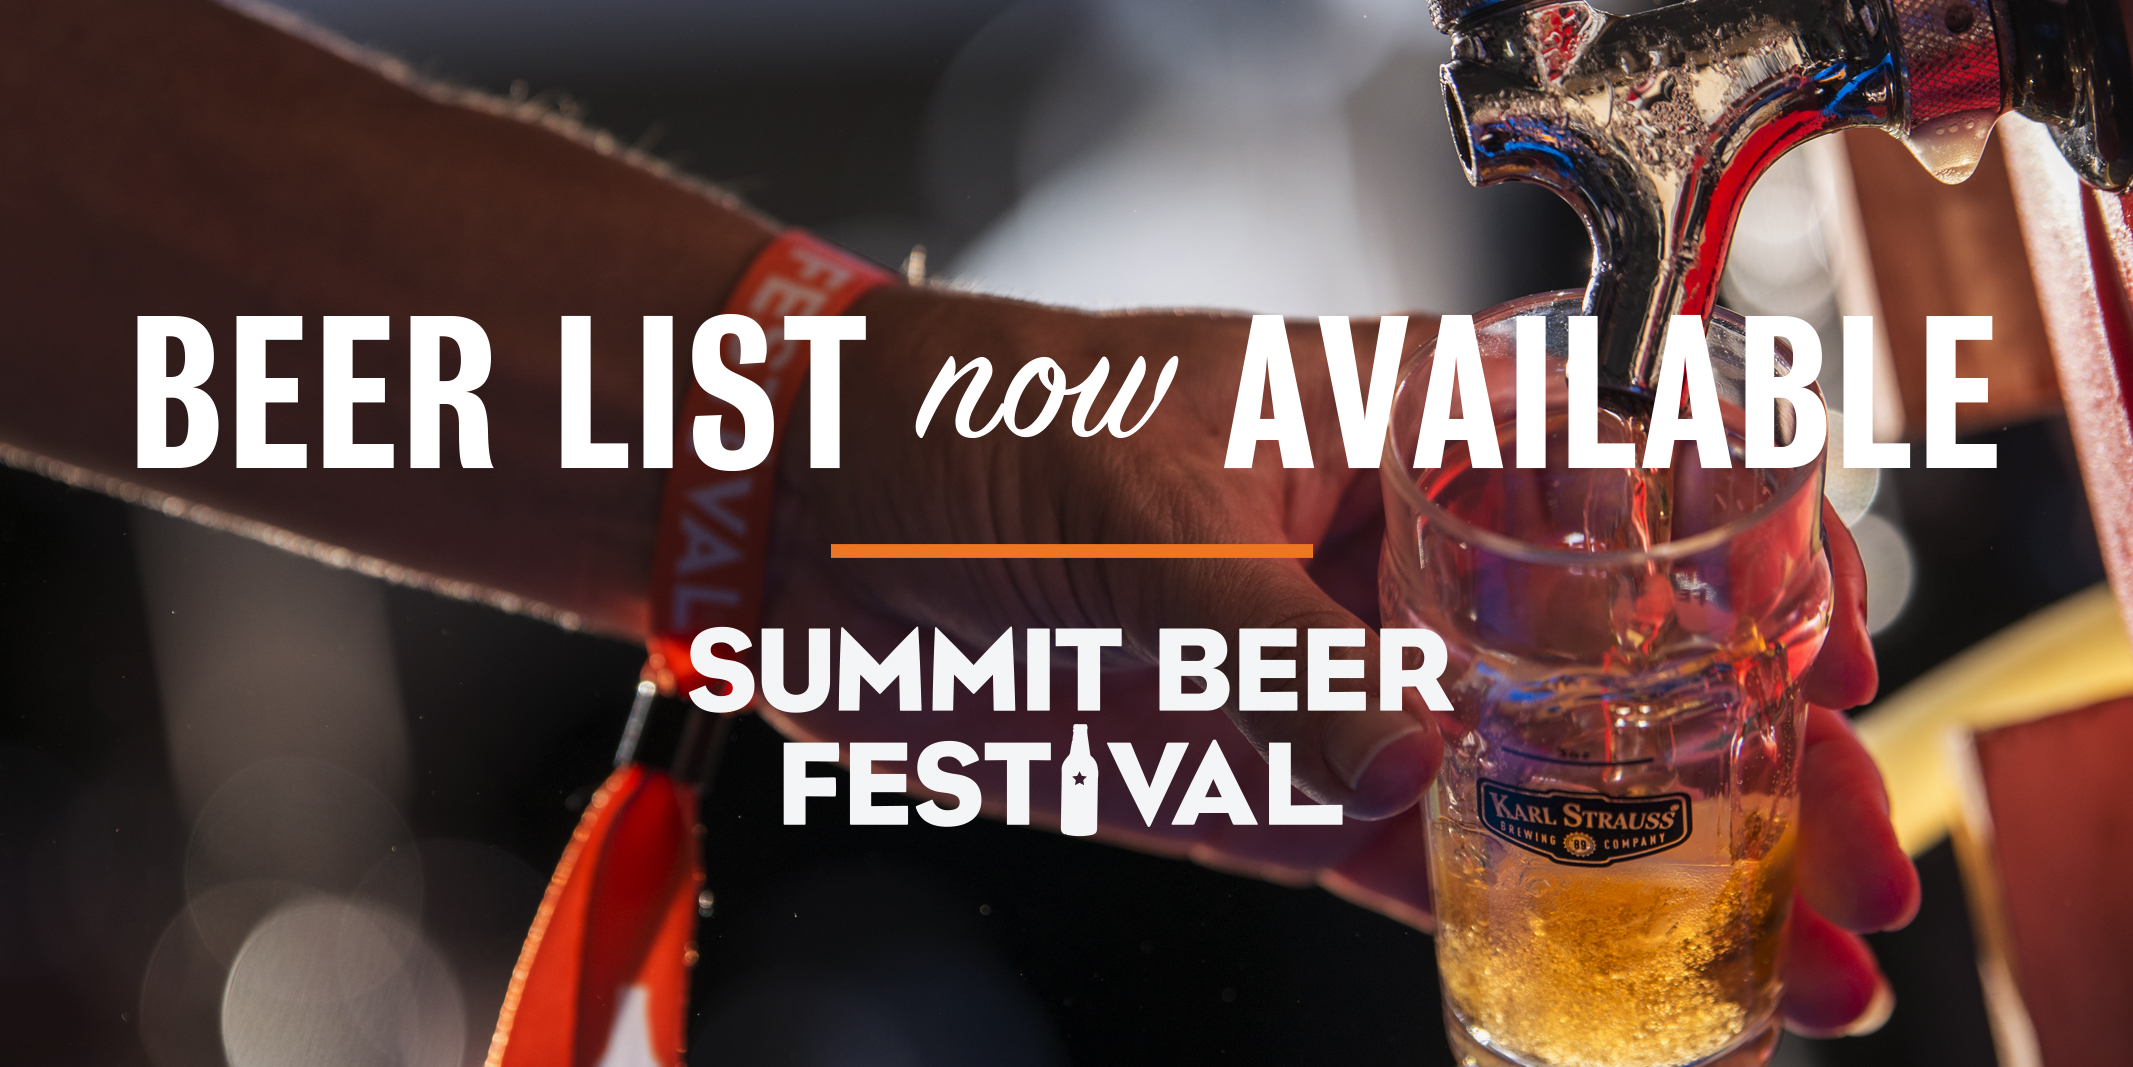 CA Craft Beer Summit and Beer Festival Brings Rare and Specialty Beers to Sacramento